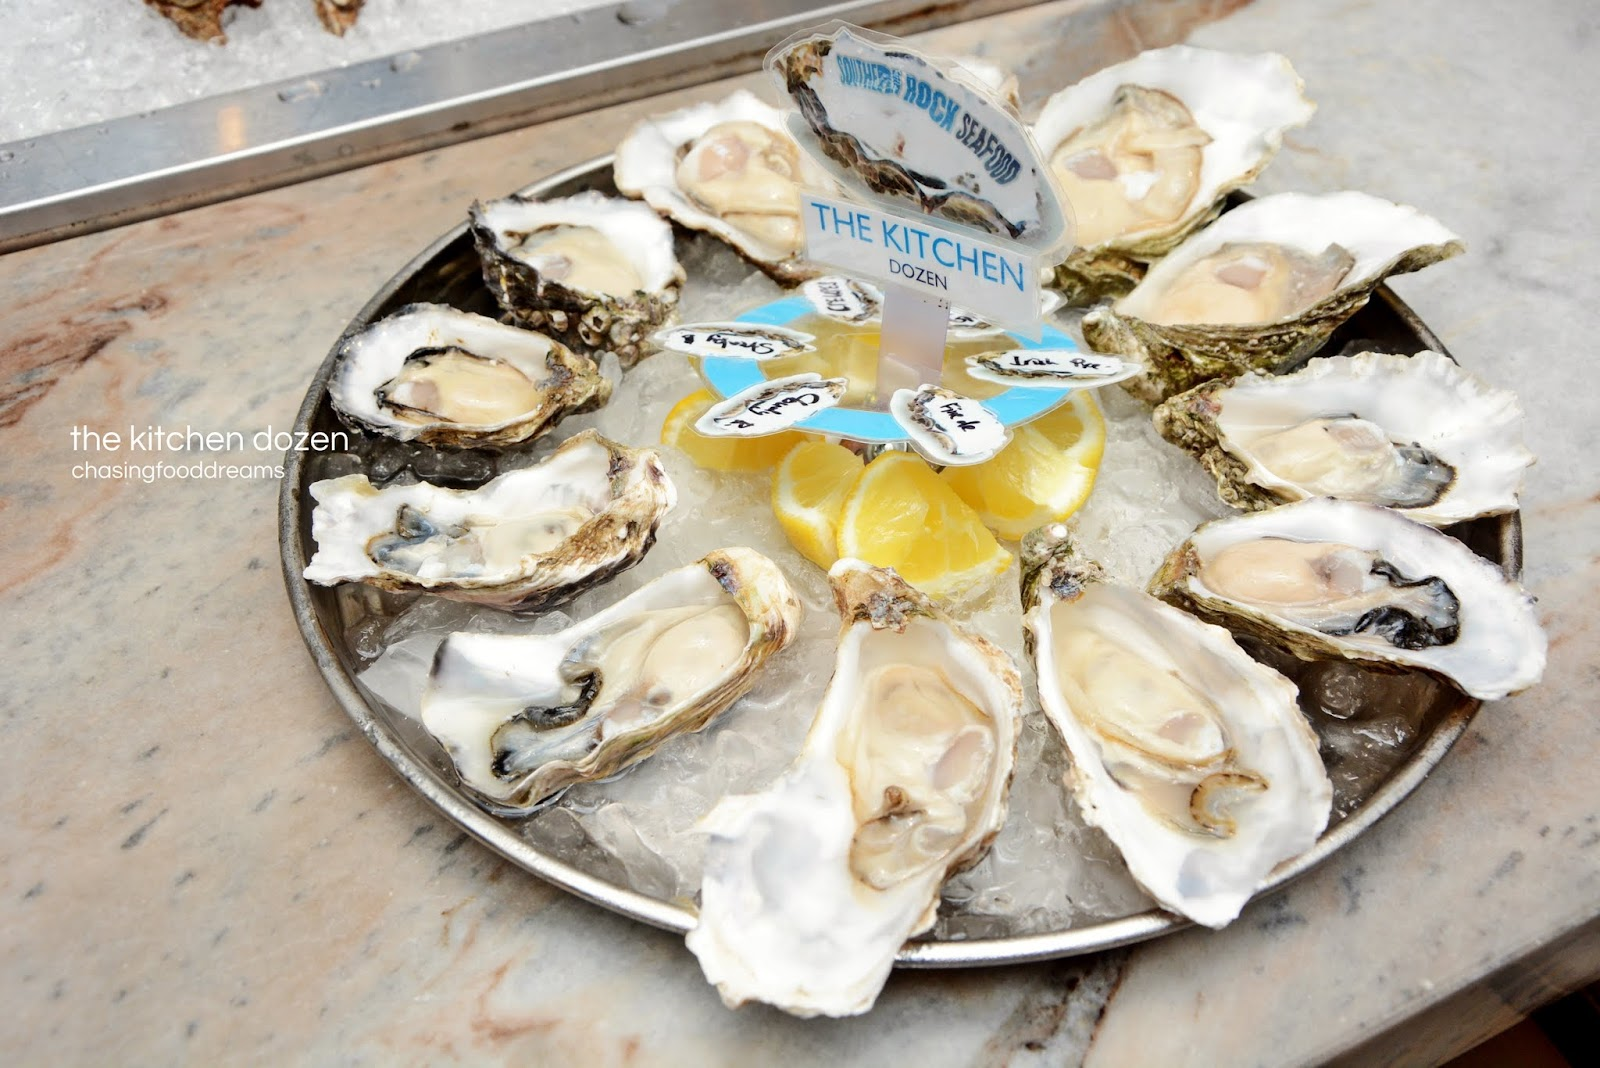 Chasing Food Dreams Southern Rock Seafood Bangsar Tcash Ramadhan Milo Malaysia Activ Go If You Cant Decide On A Single Variety Of Oysters For Their Special The Kitchen Dozen Rm168 Platter Features 2 Pieces Each And Is